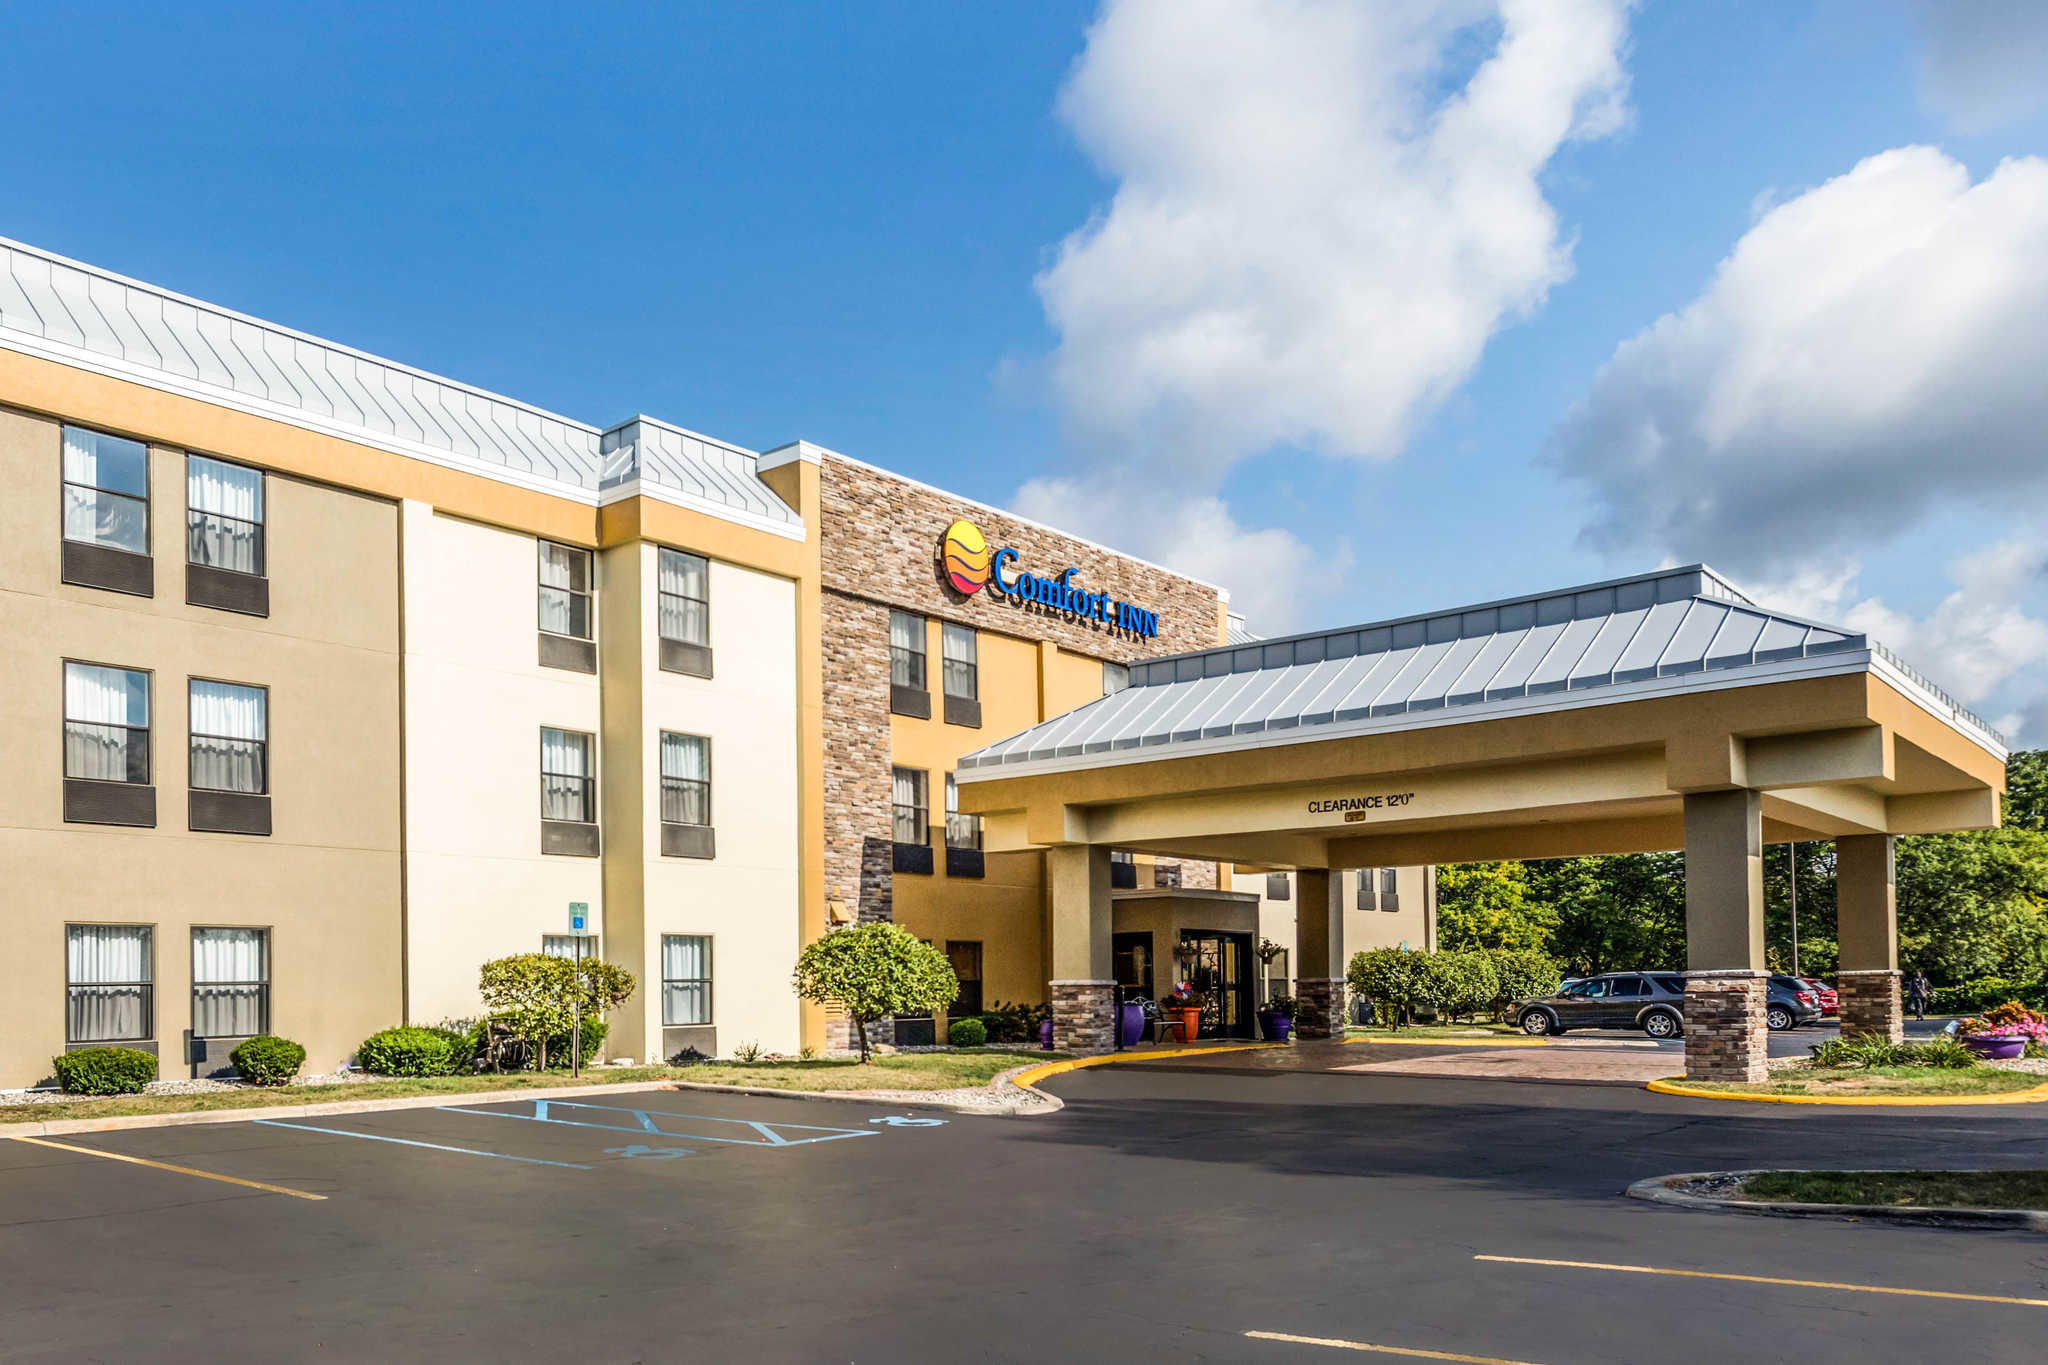 Days inn coupon code